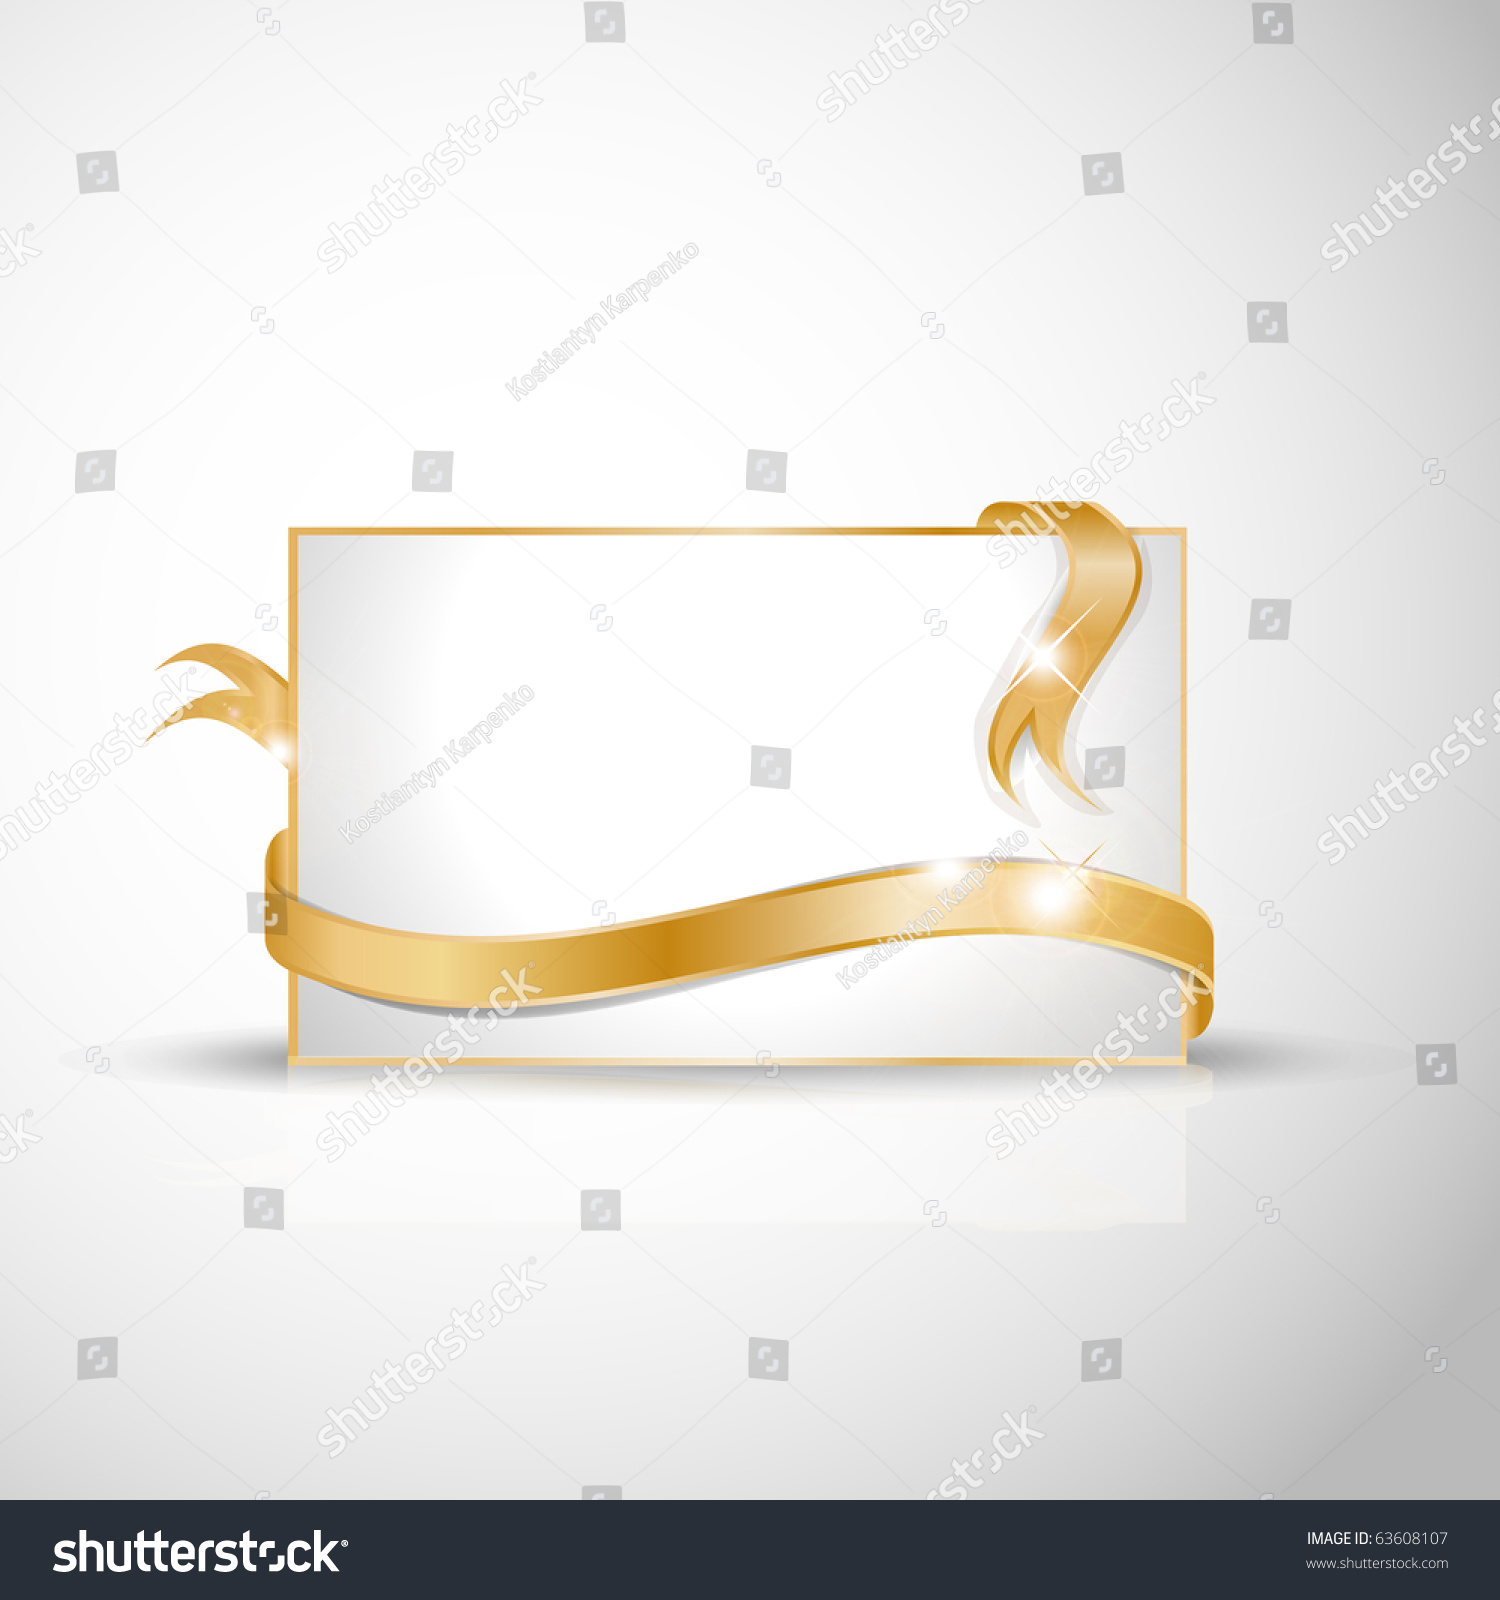 beautiful wedding card golden ribbon around stock vector  beautiful wedding card golden ribbon around blank white paper where you should write your